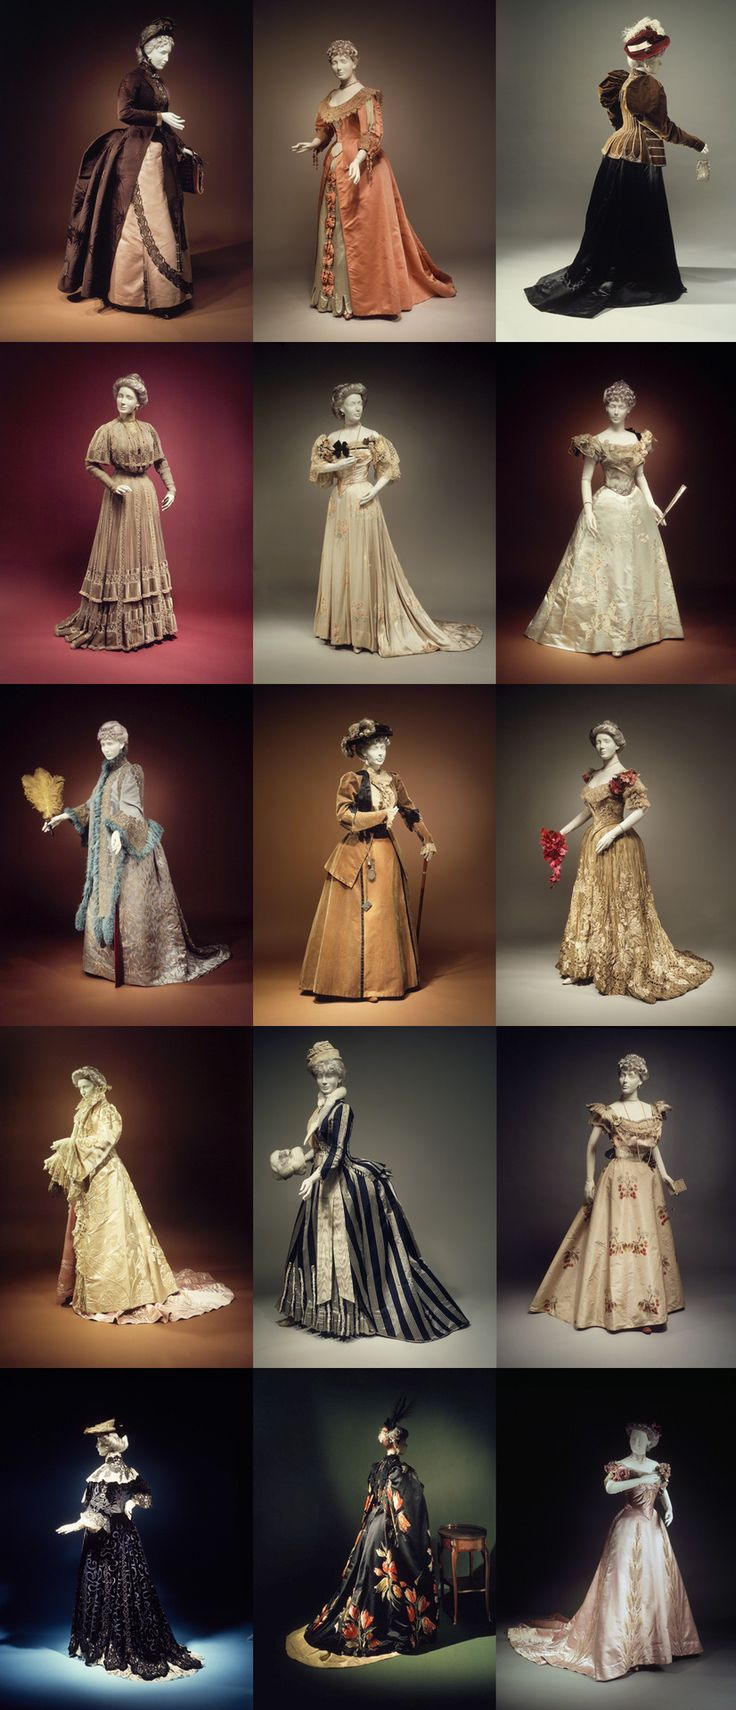 """ This 1989 exhibition of the Brooklyn Museum was called The Opulent Era: Fashions of Worth, Doucet and Pingat, and featured many exquisite works from the greatest couture houses of la belle époque. """